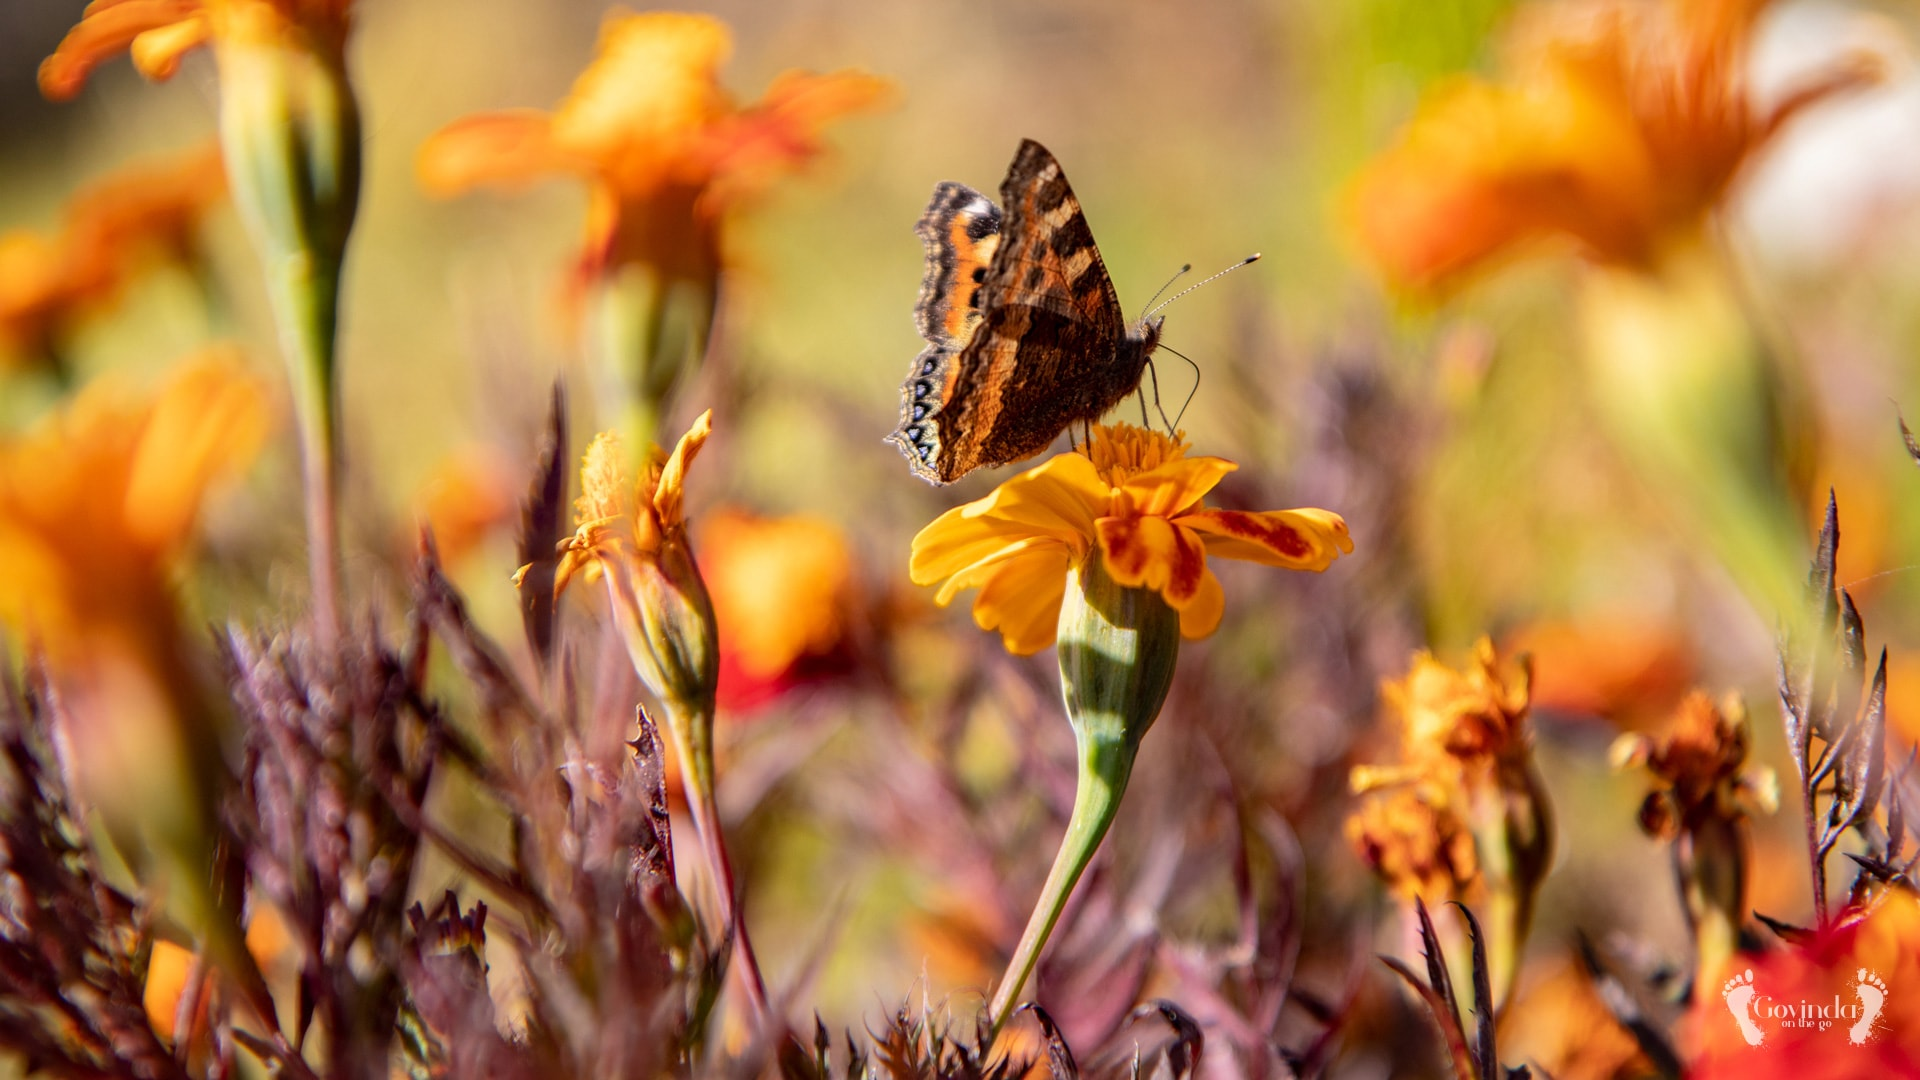 Himalayan butterfly on Himalayan flower